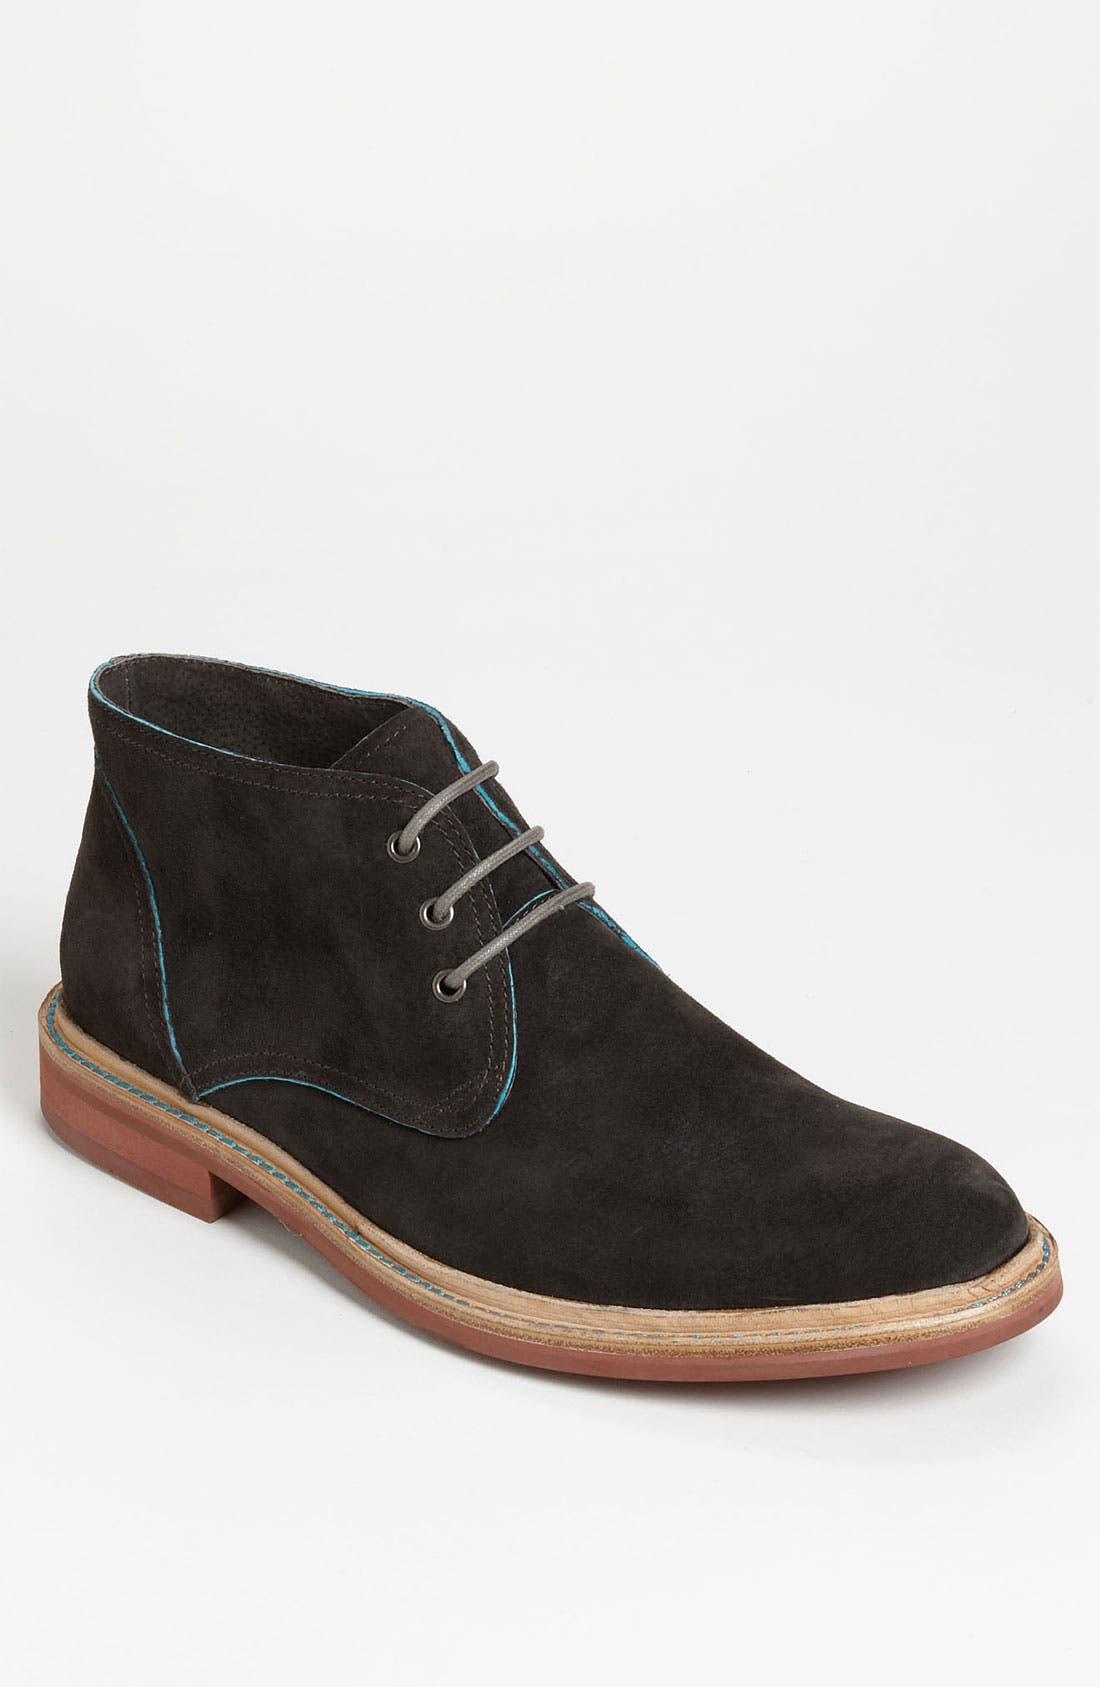 Alternate Image 1 Selected - Kenneth Cole New York 'Brick Wall' Chukka Boot (Online Only)